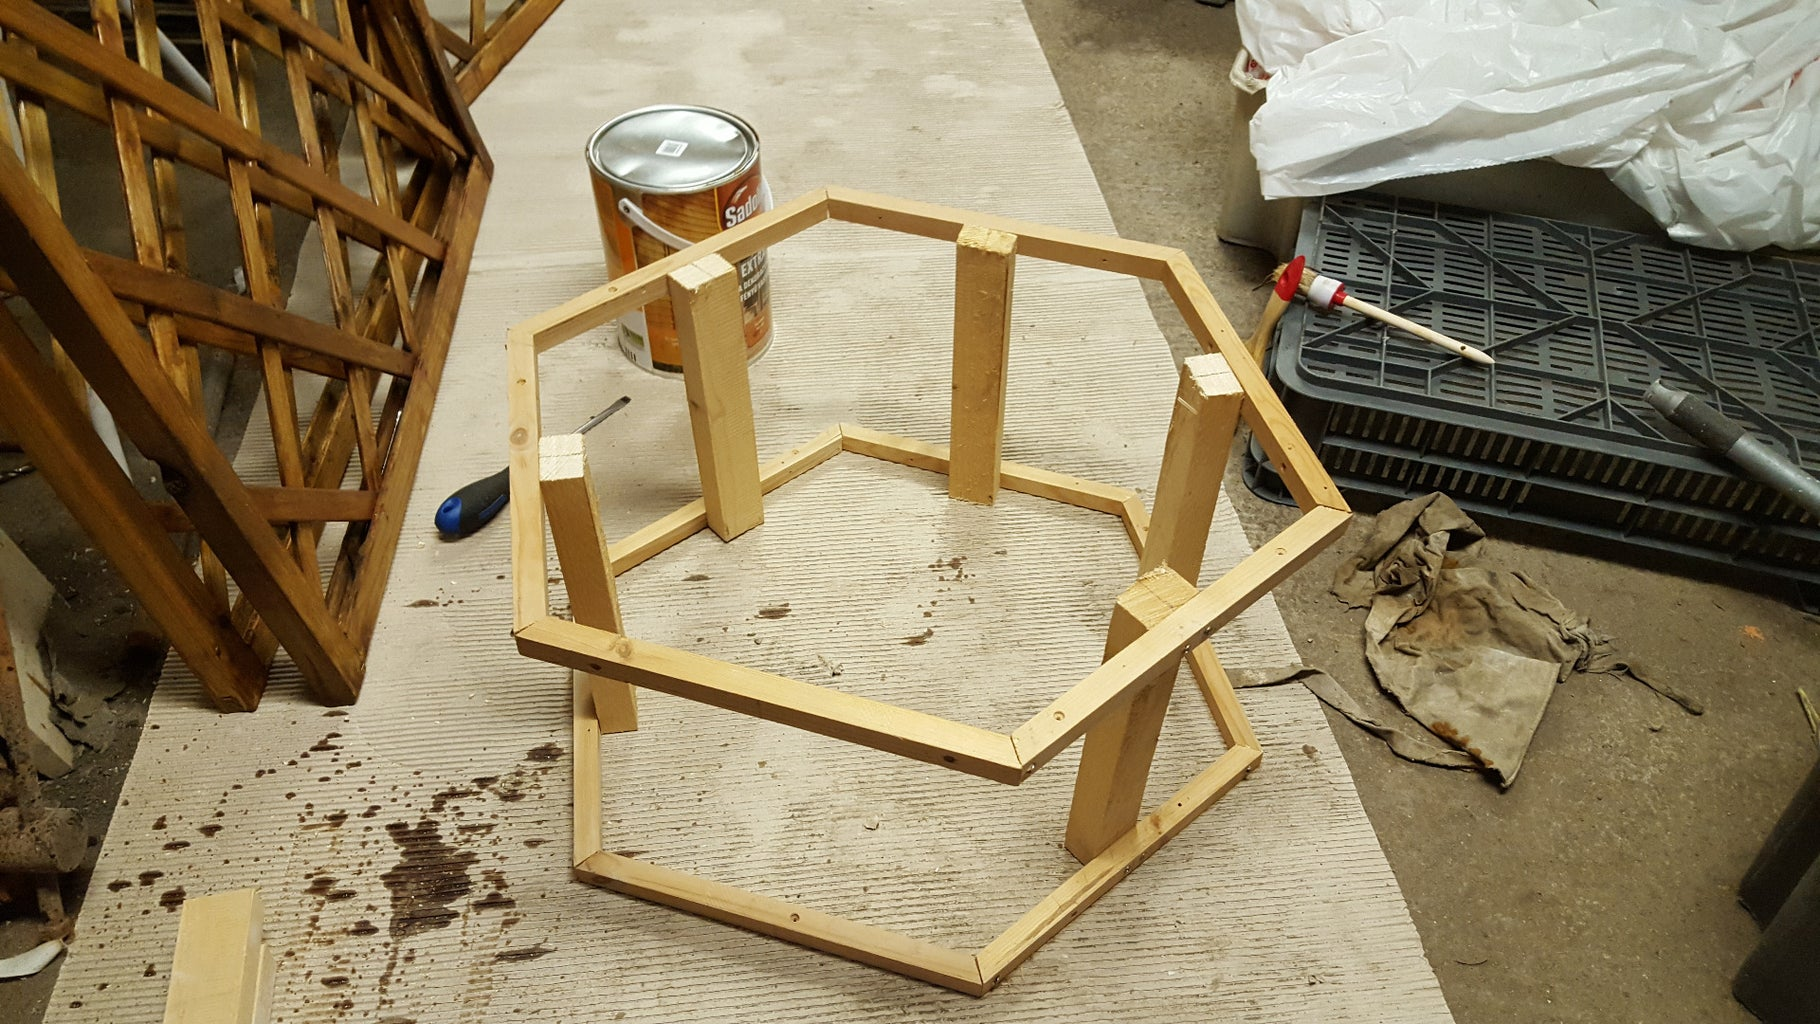 Step 2: Build the Frame From Pine Wood